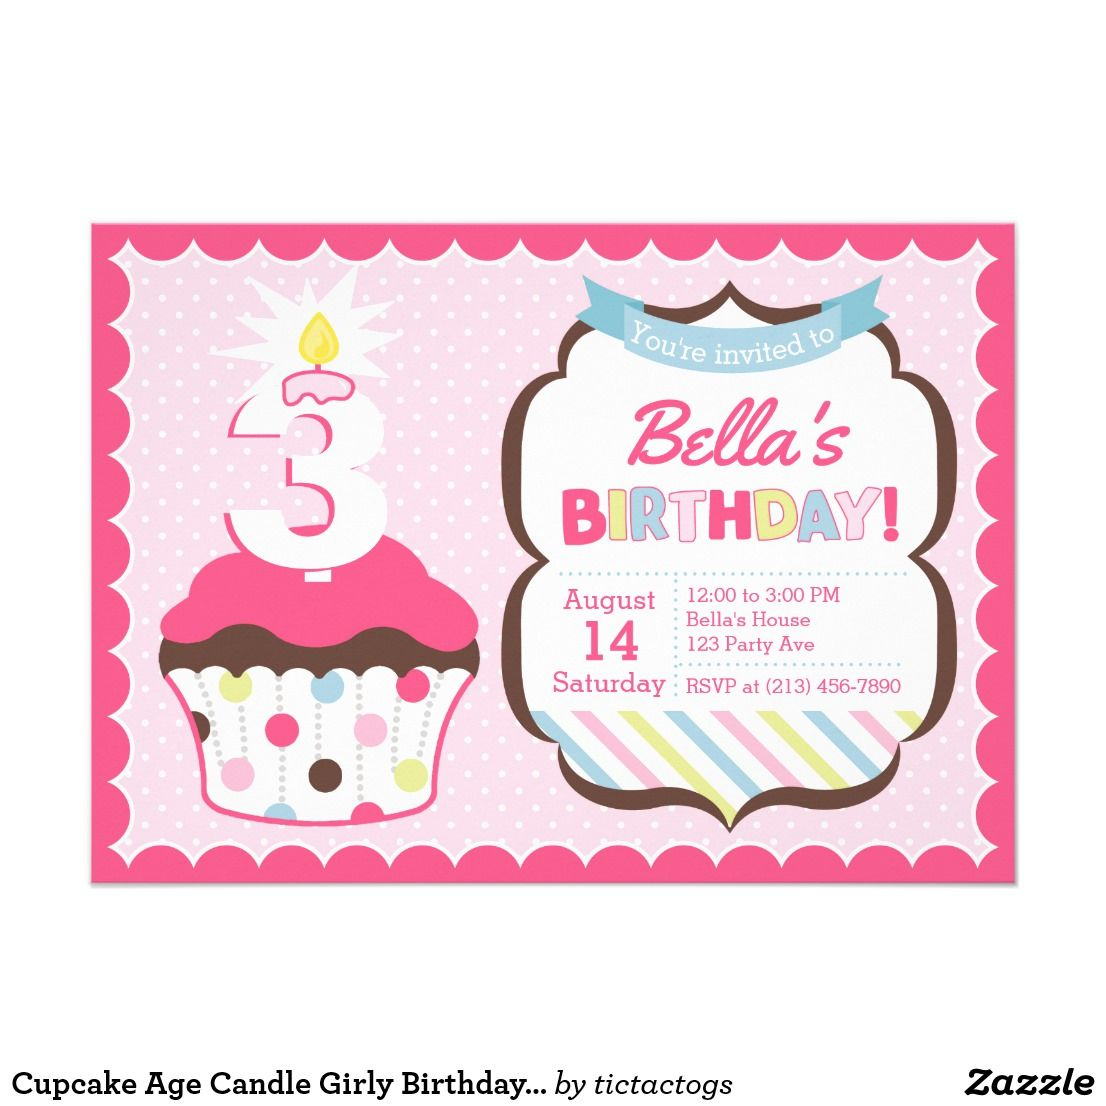 Cupcake Age Candle Girly Birthday Invitation | Girls Birthday Party ...